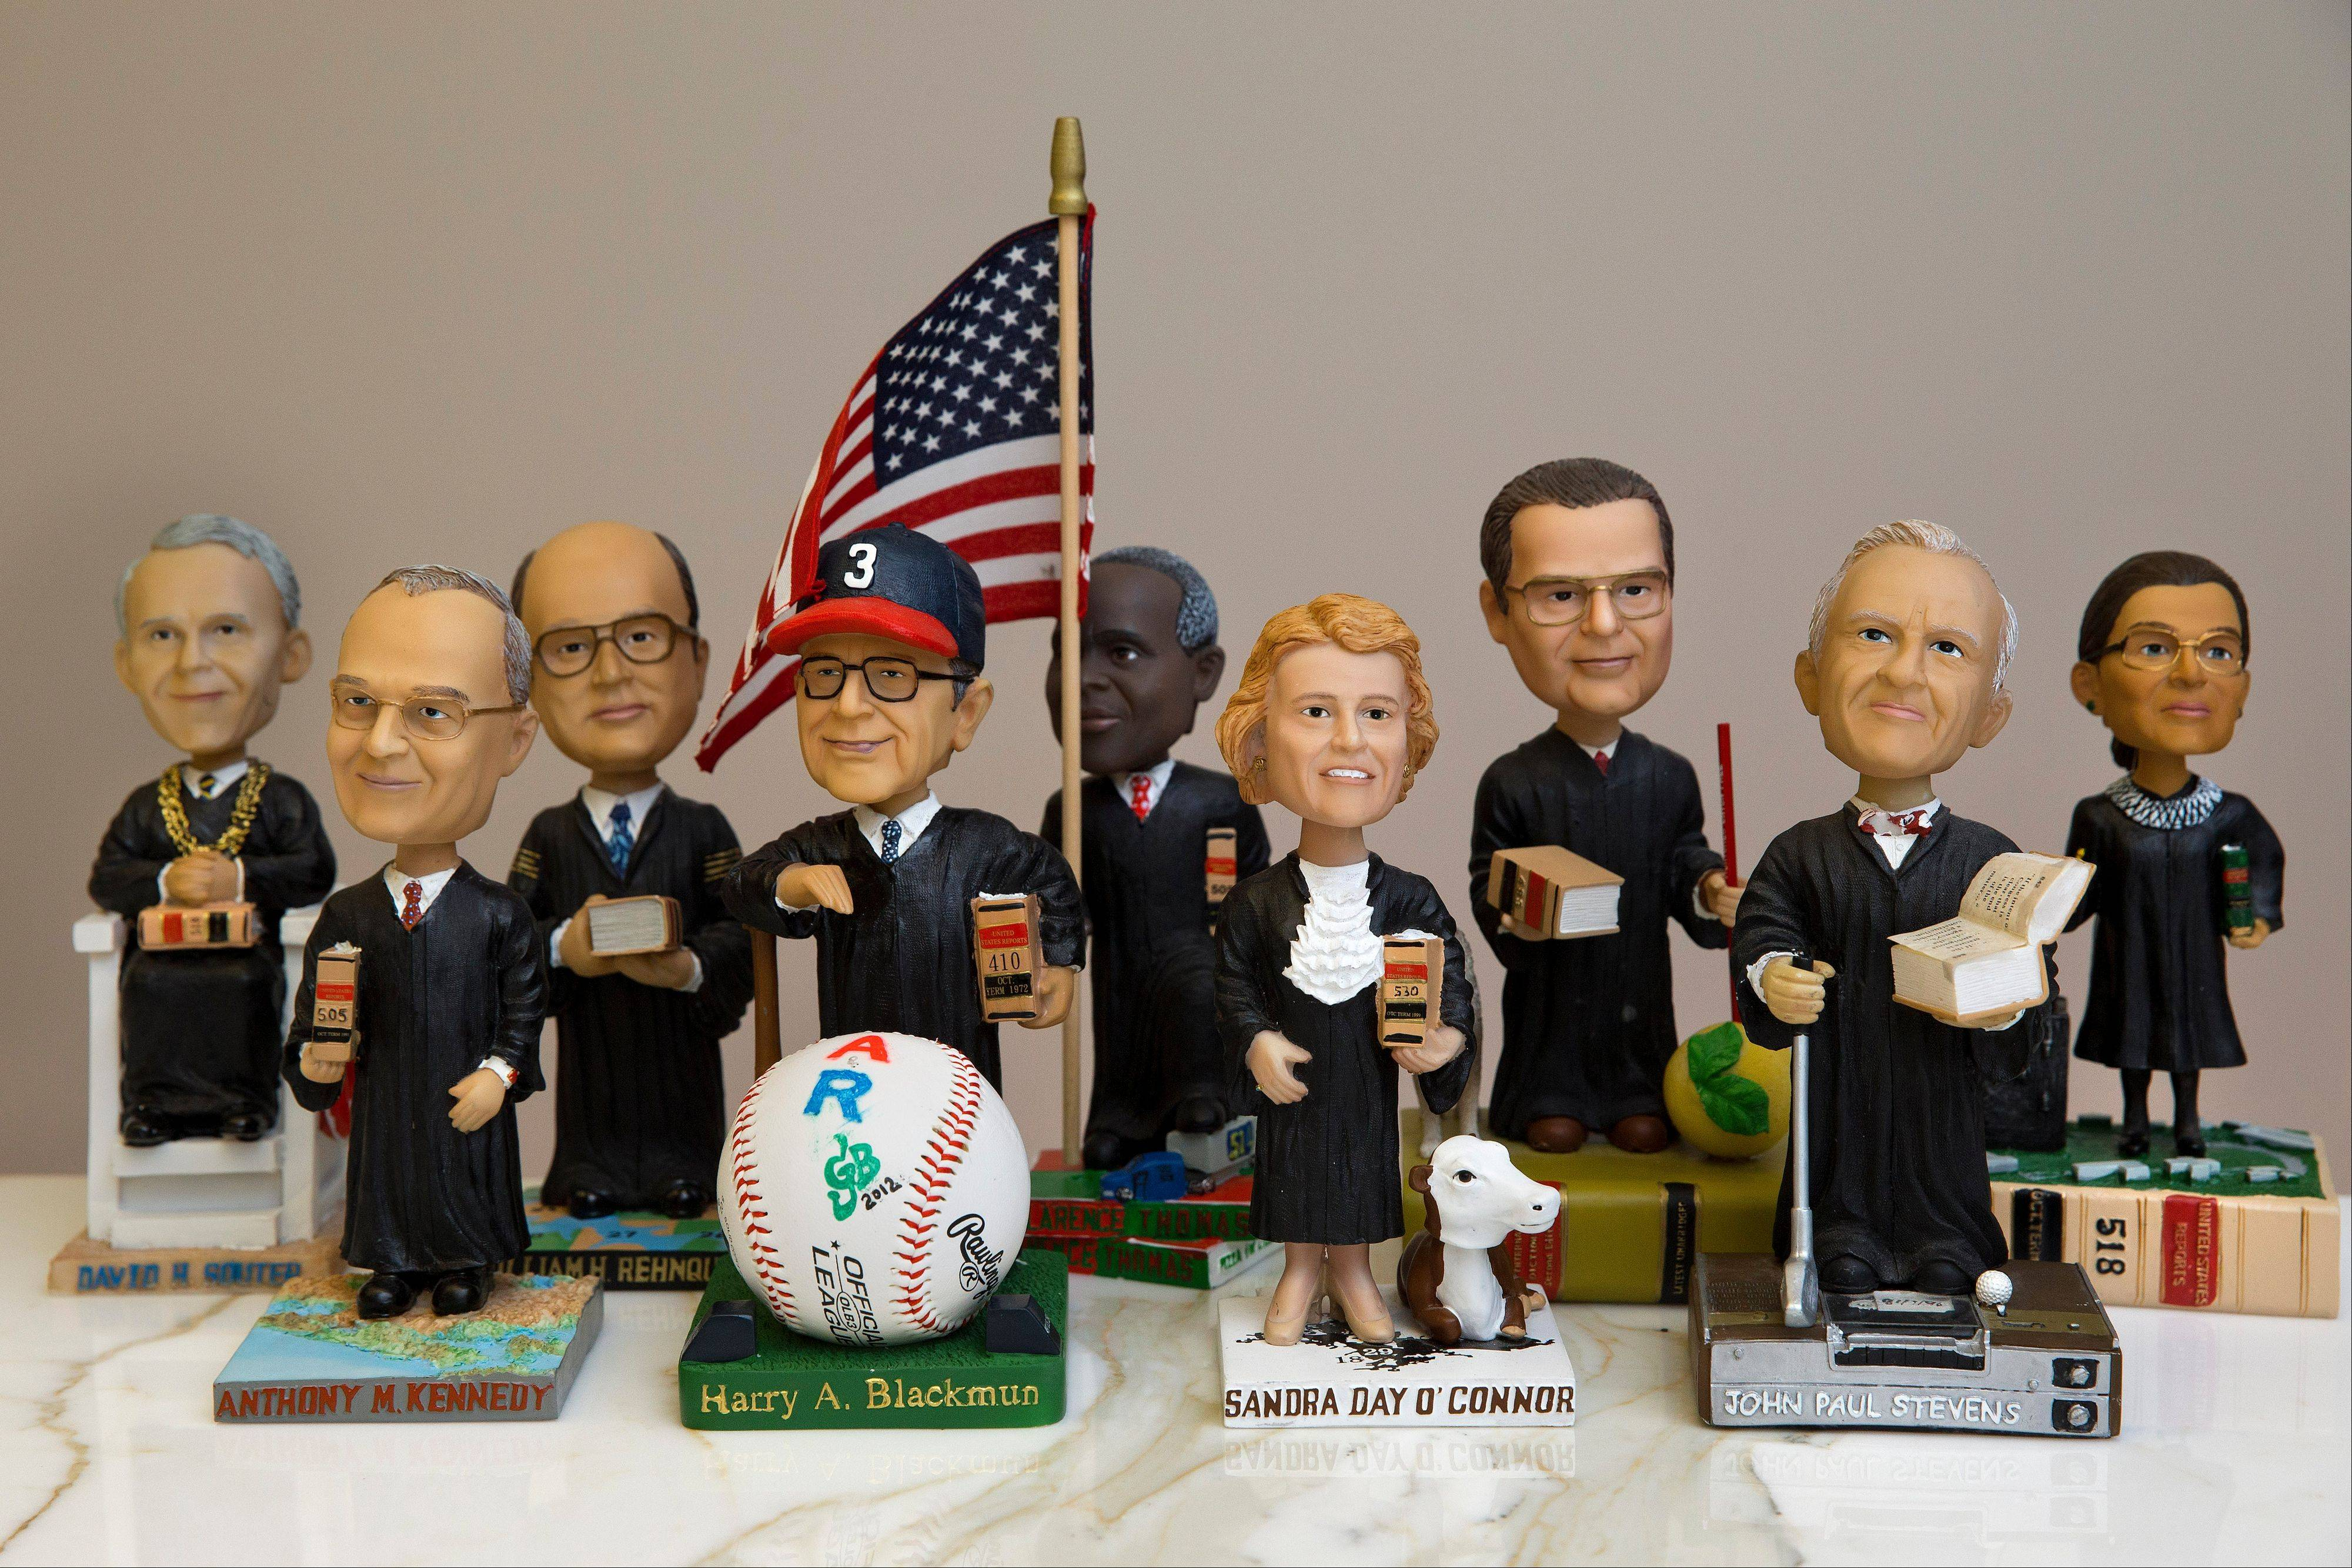 These limited edition bobbleheads of U.S. Supreme Court justices are the work of law professor Ross Davies, who has been creating them for the past ten years. When finished, they arrive unannounced on the real justices� desks, and fans will go to some lengths to get one.